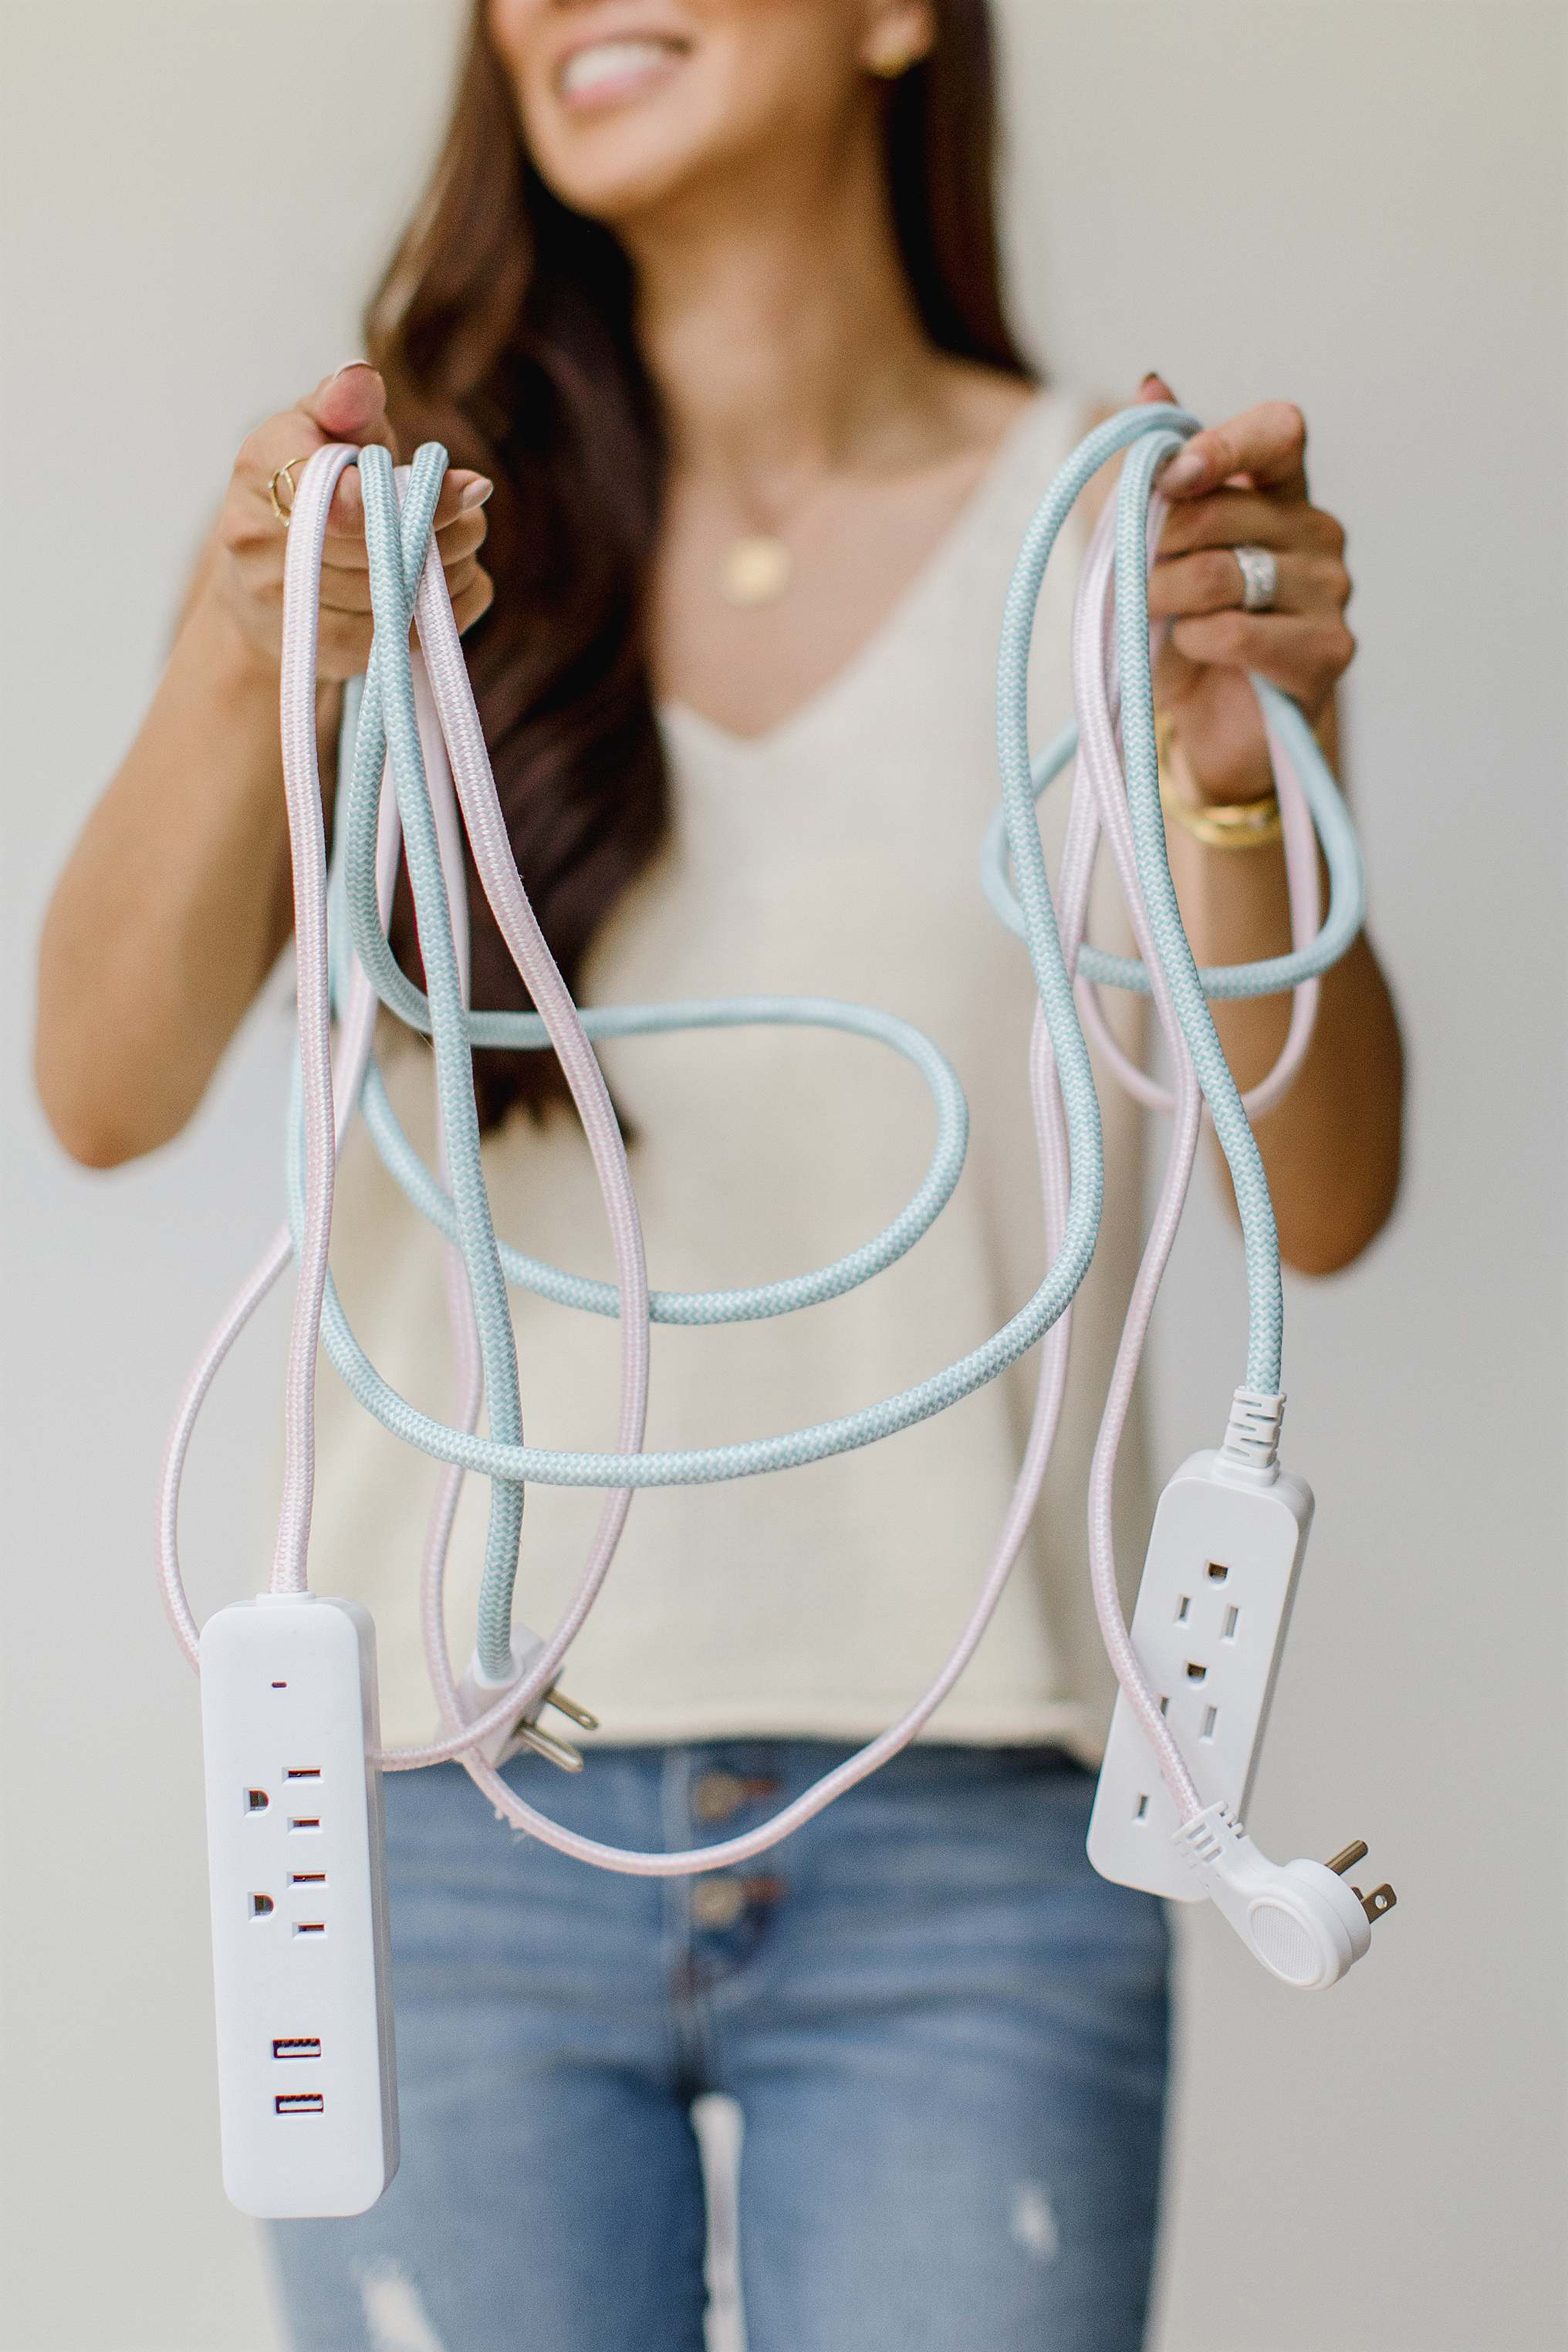 stylish extension cords for your home blends into decor